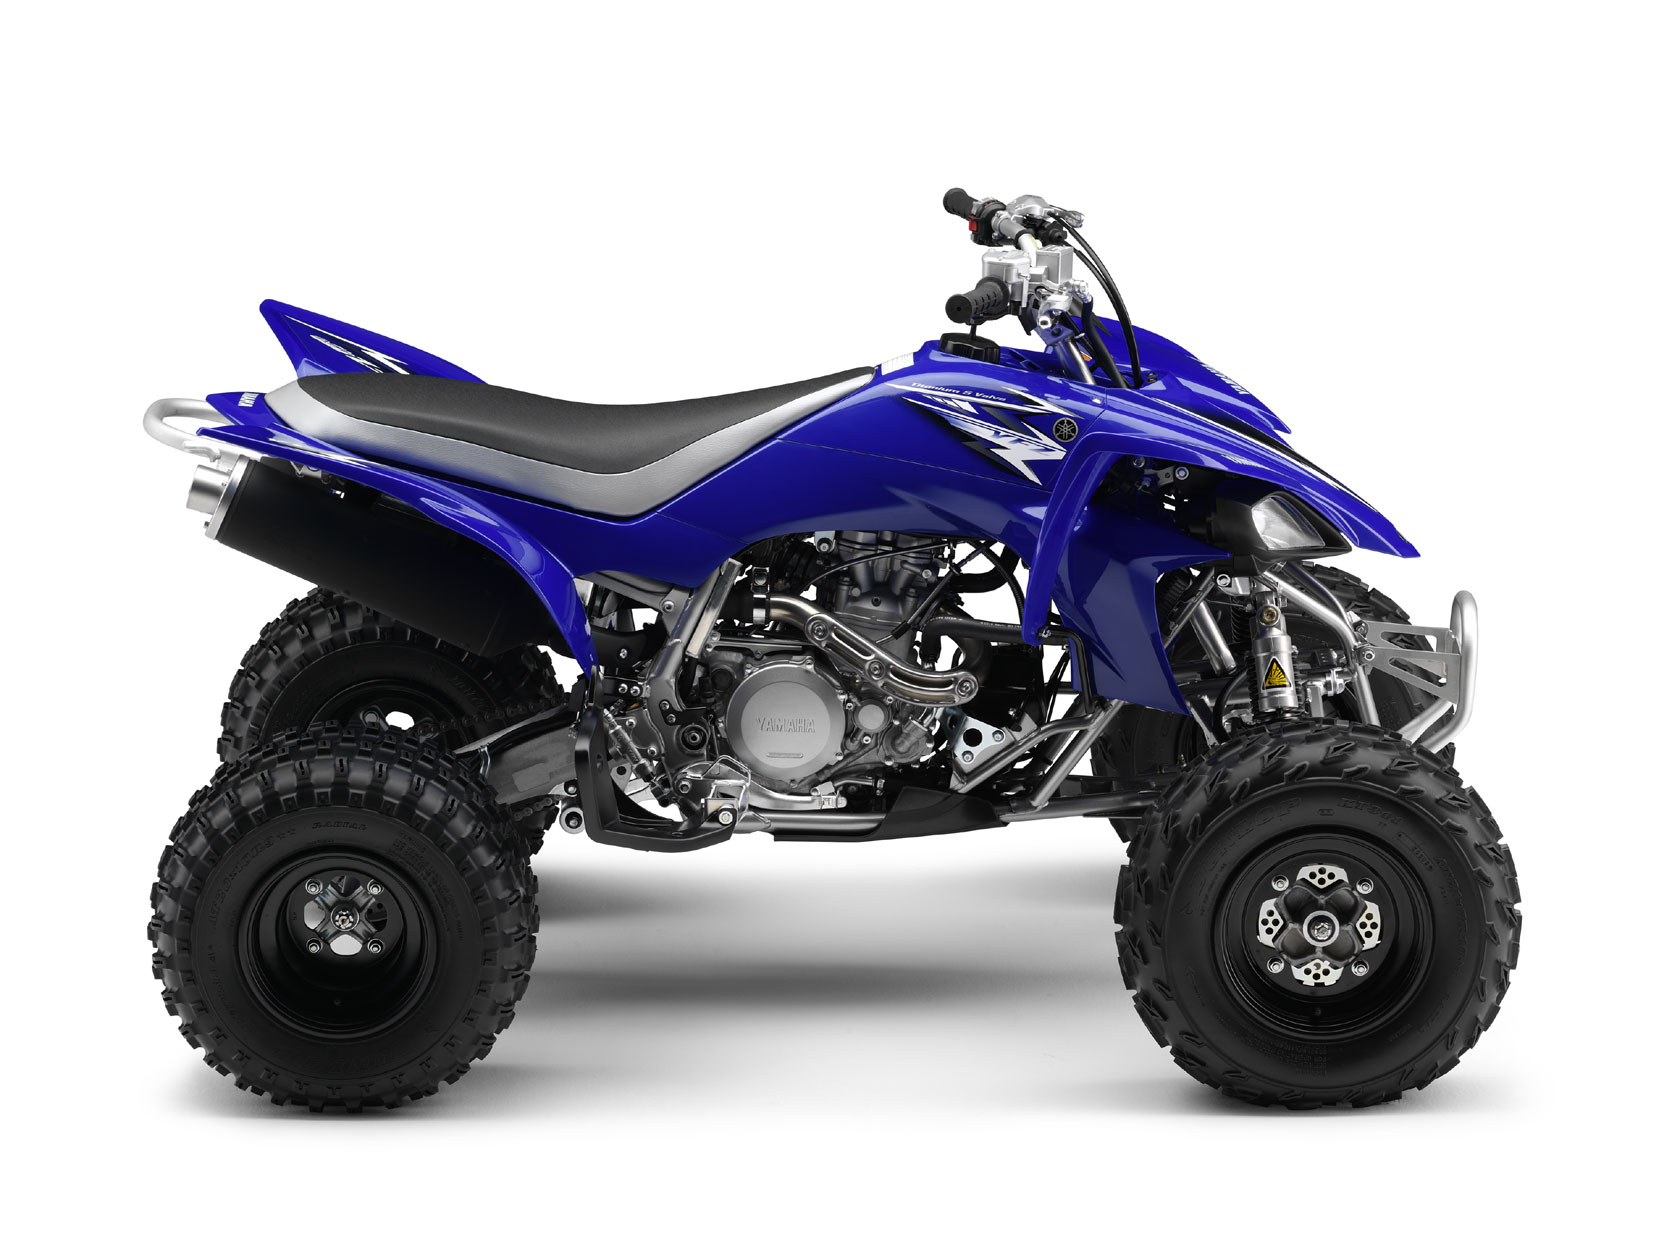 yamaha yfz450 specs 2008 2009 autoevolution. Black Bedroom Furniture Sets. Home Design Ideas